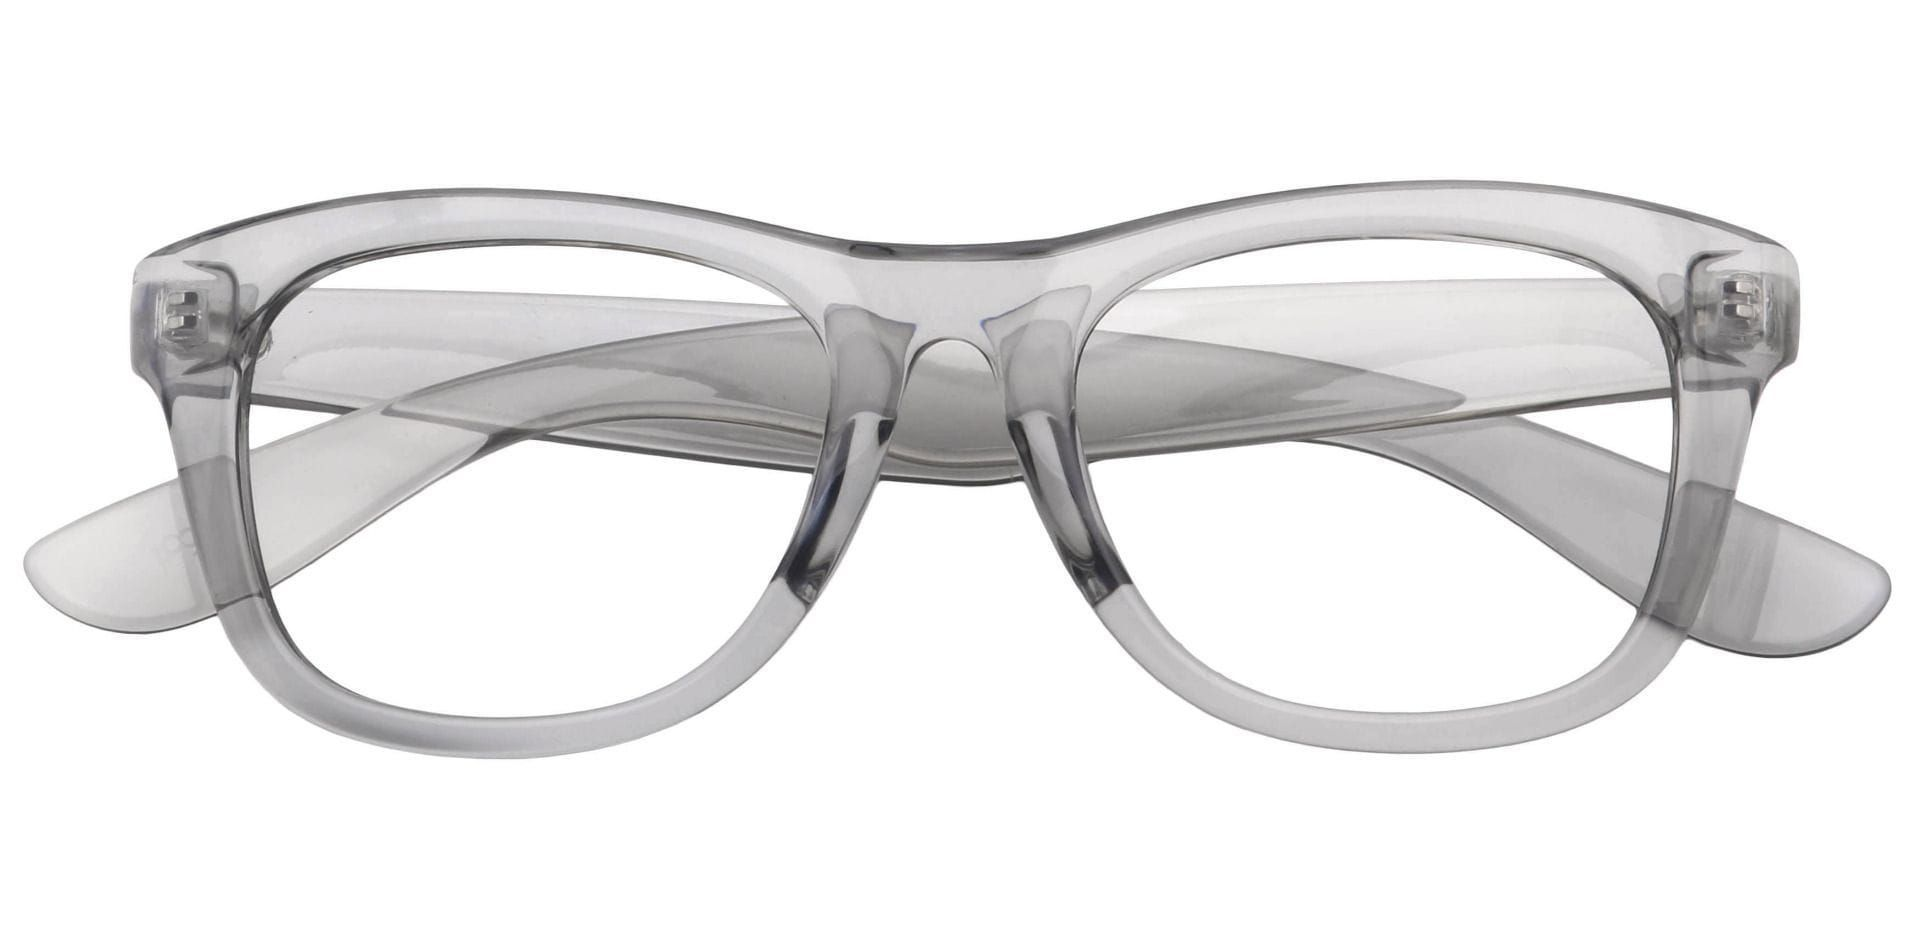 Callie Square Prescription Glasses - Gray